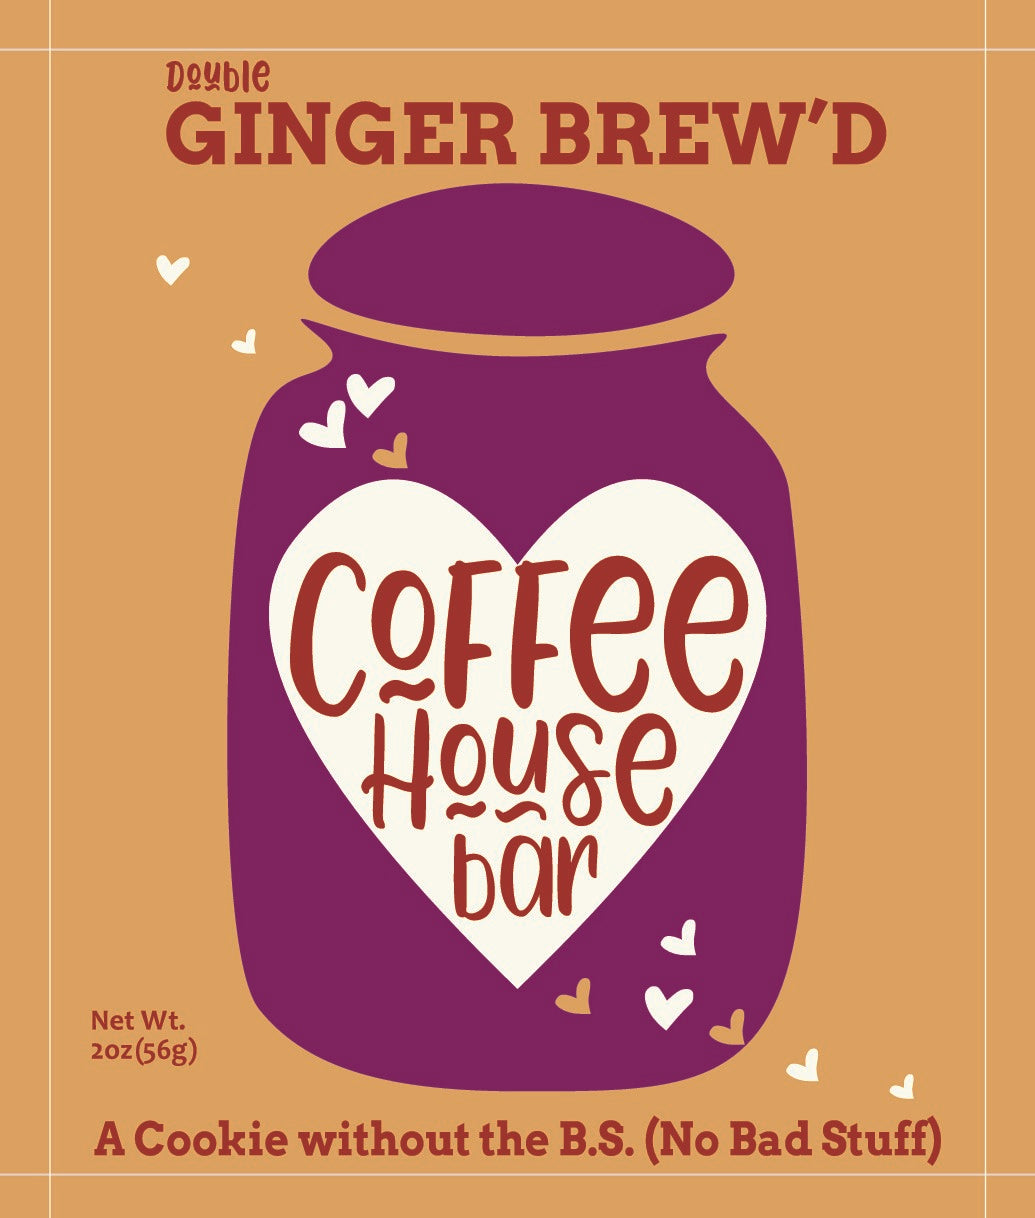 Coffee House Bar - (2 ounce) Ginger Brew'd (Six Pack)